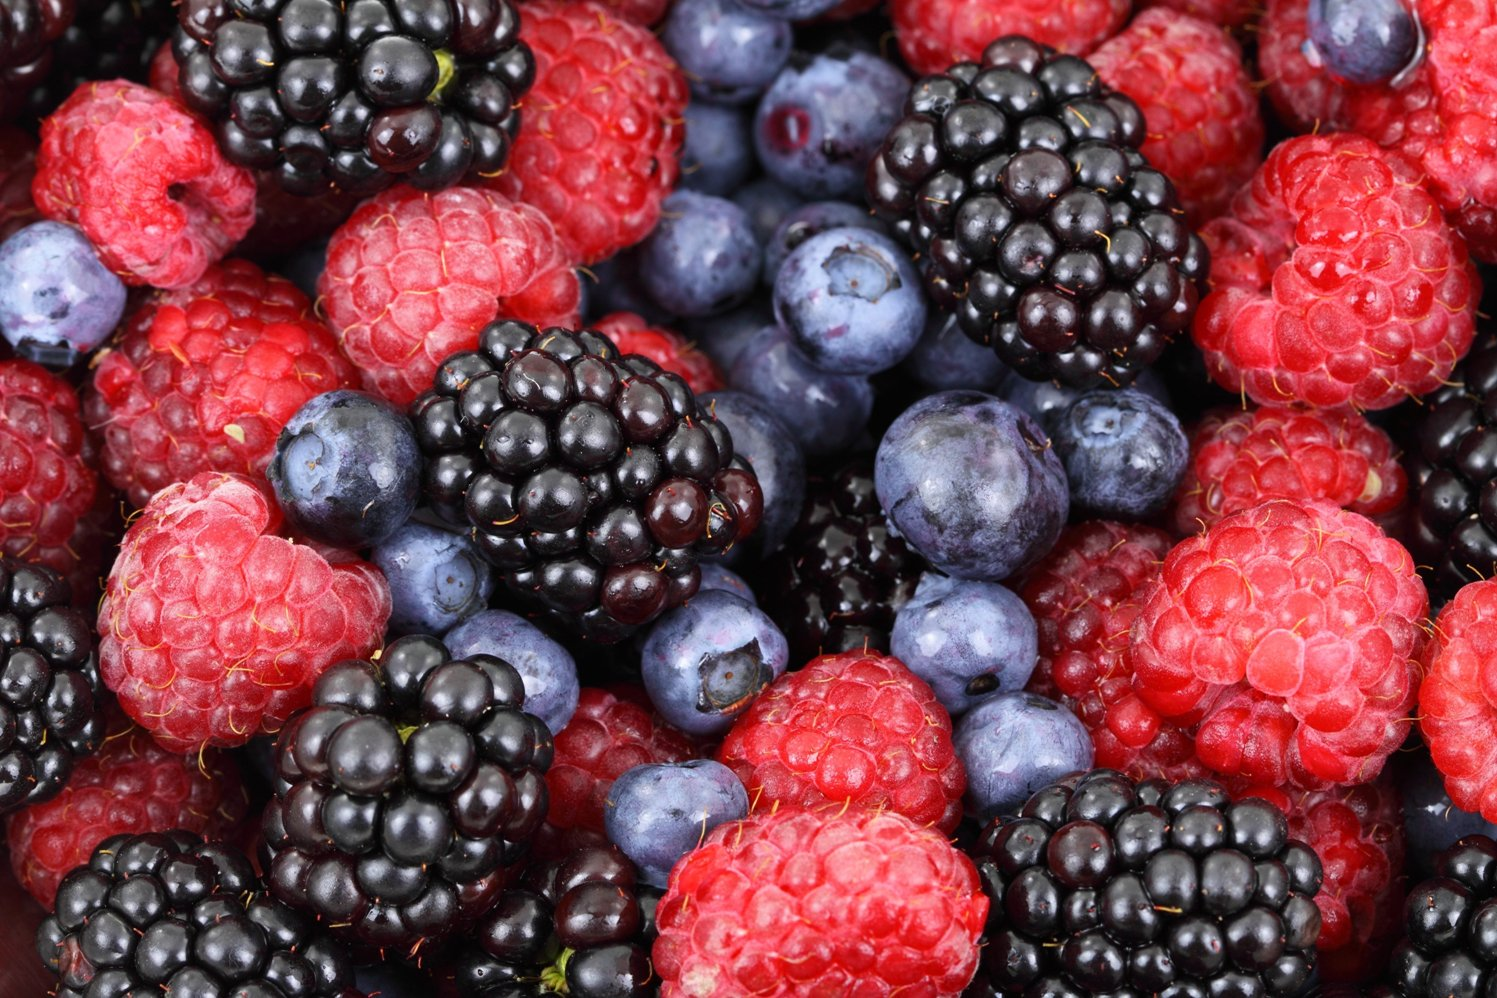 Book Review: Berries by Roger Yepsen